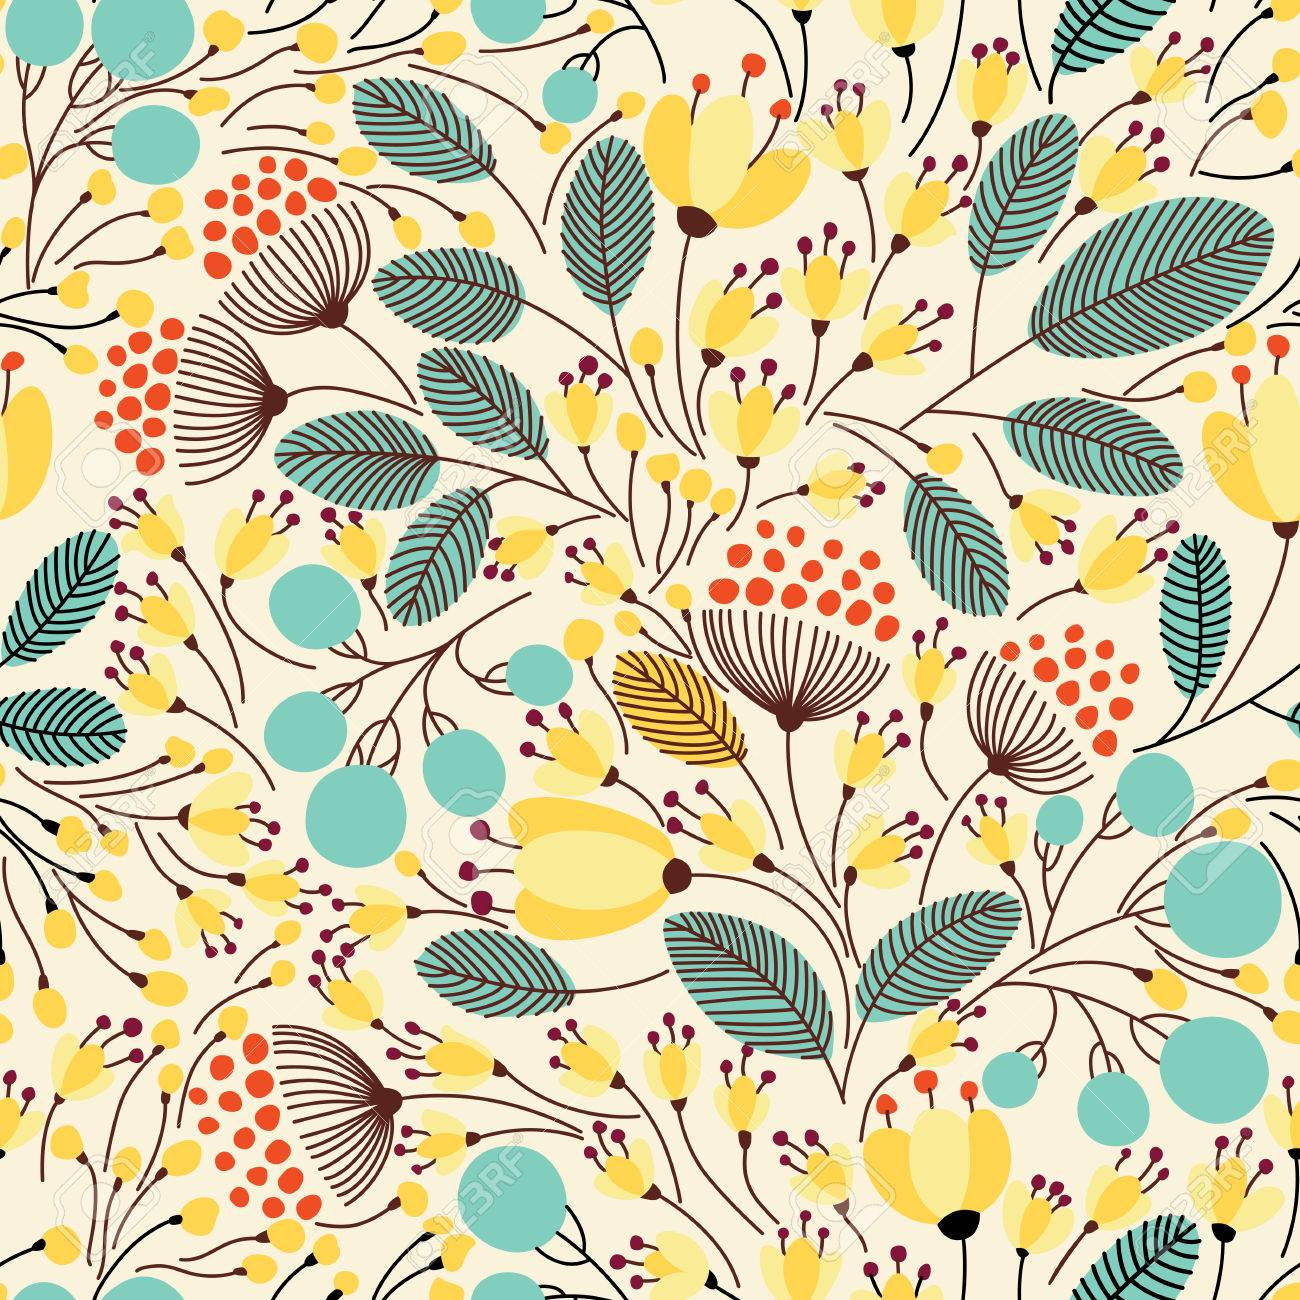 Elegant seamless pattern with flowers, vector illustration - 54755322